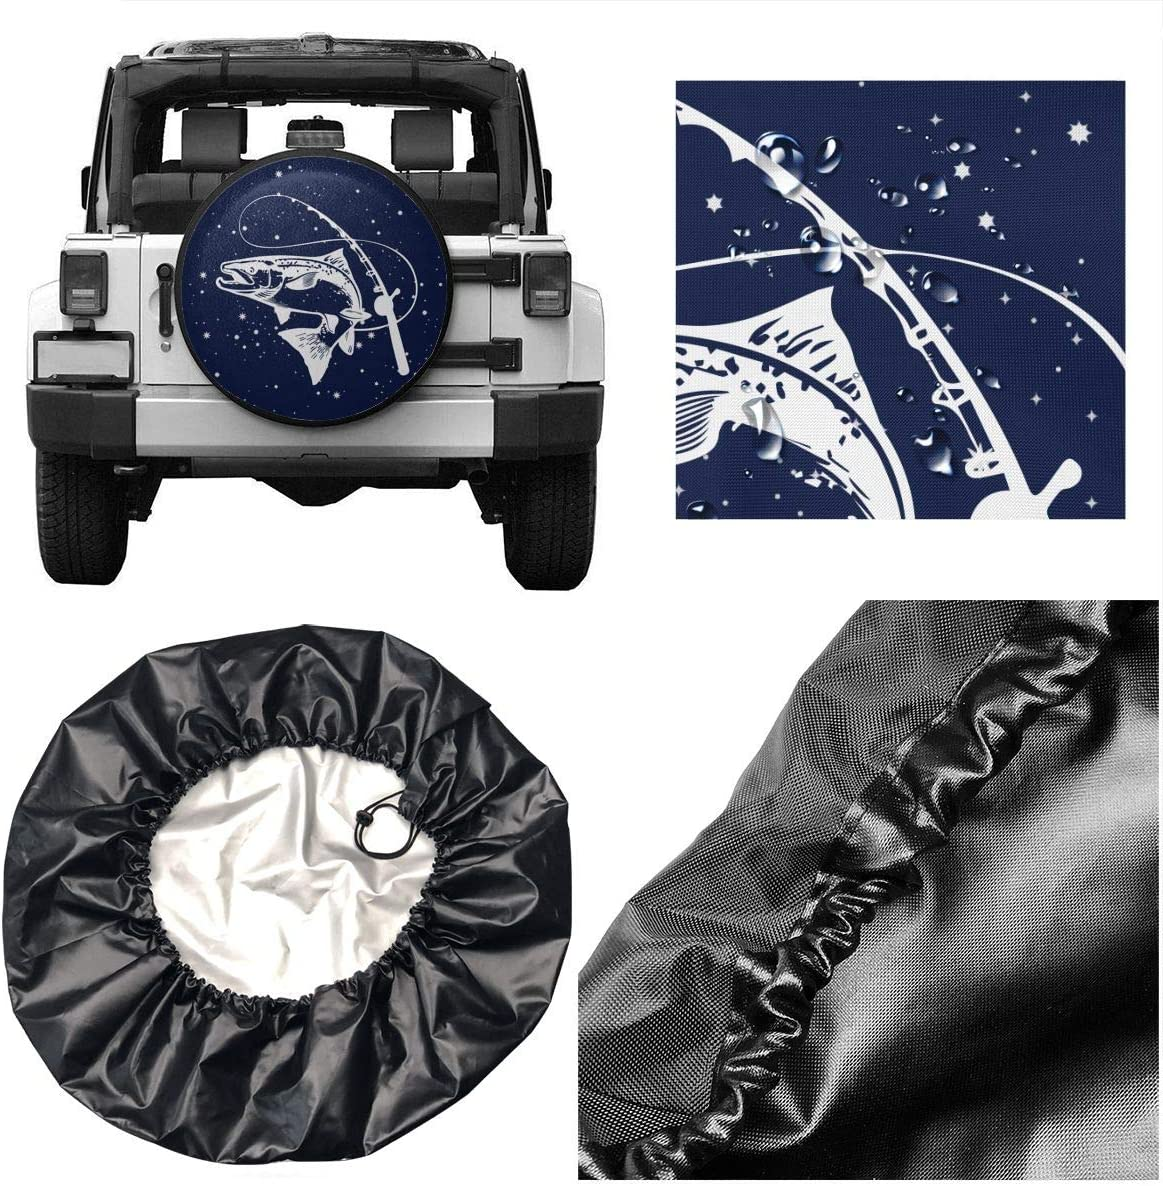 BAG9S-G Boat Cartoon Fish Tire Covers Car SUV Camper Travel Trailer Spare Tire Wheel Covers